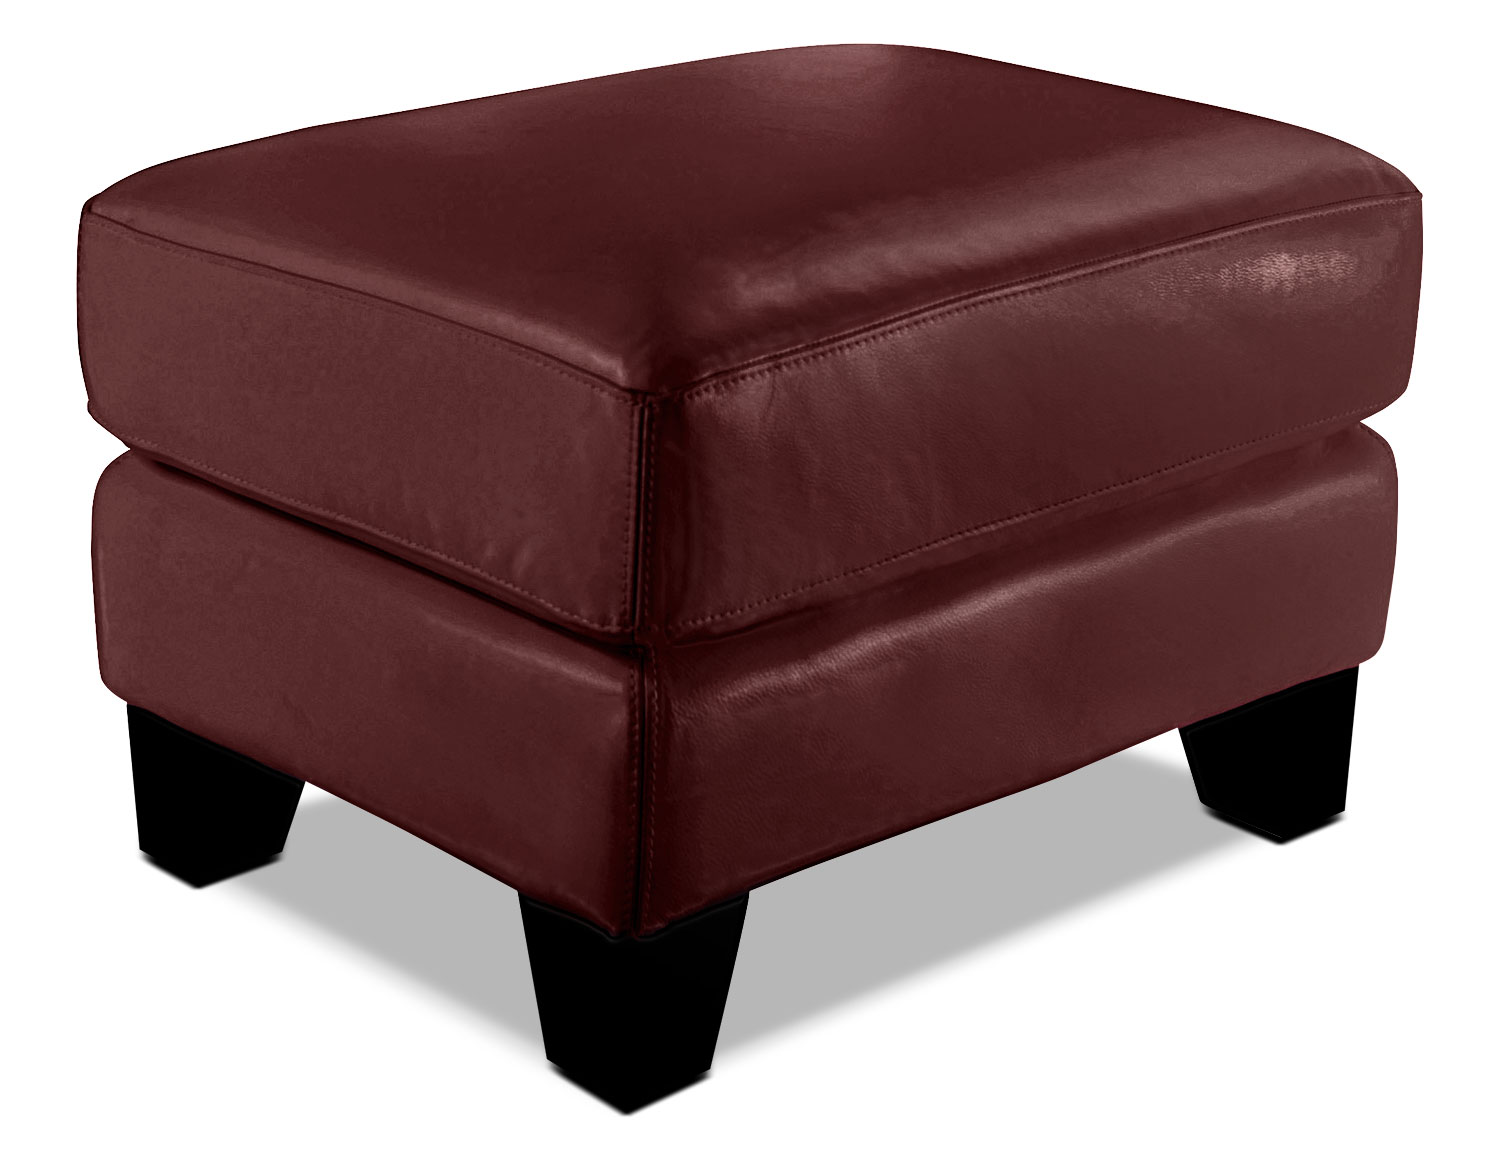 Living Room Furniture - Avenue Genuine Leather Ottoman - Red